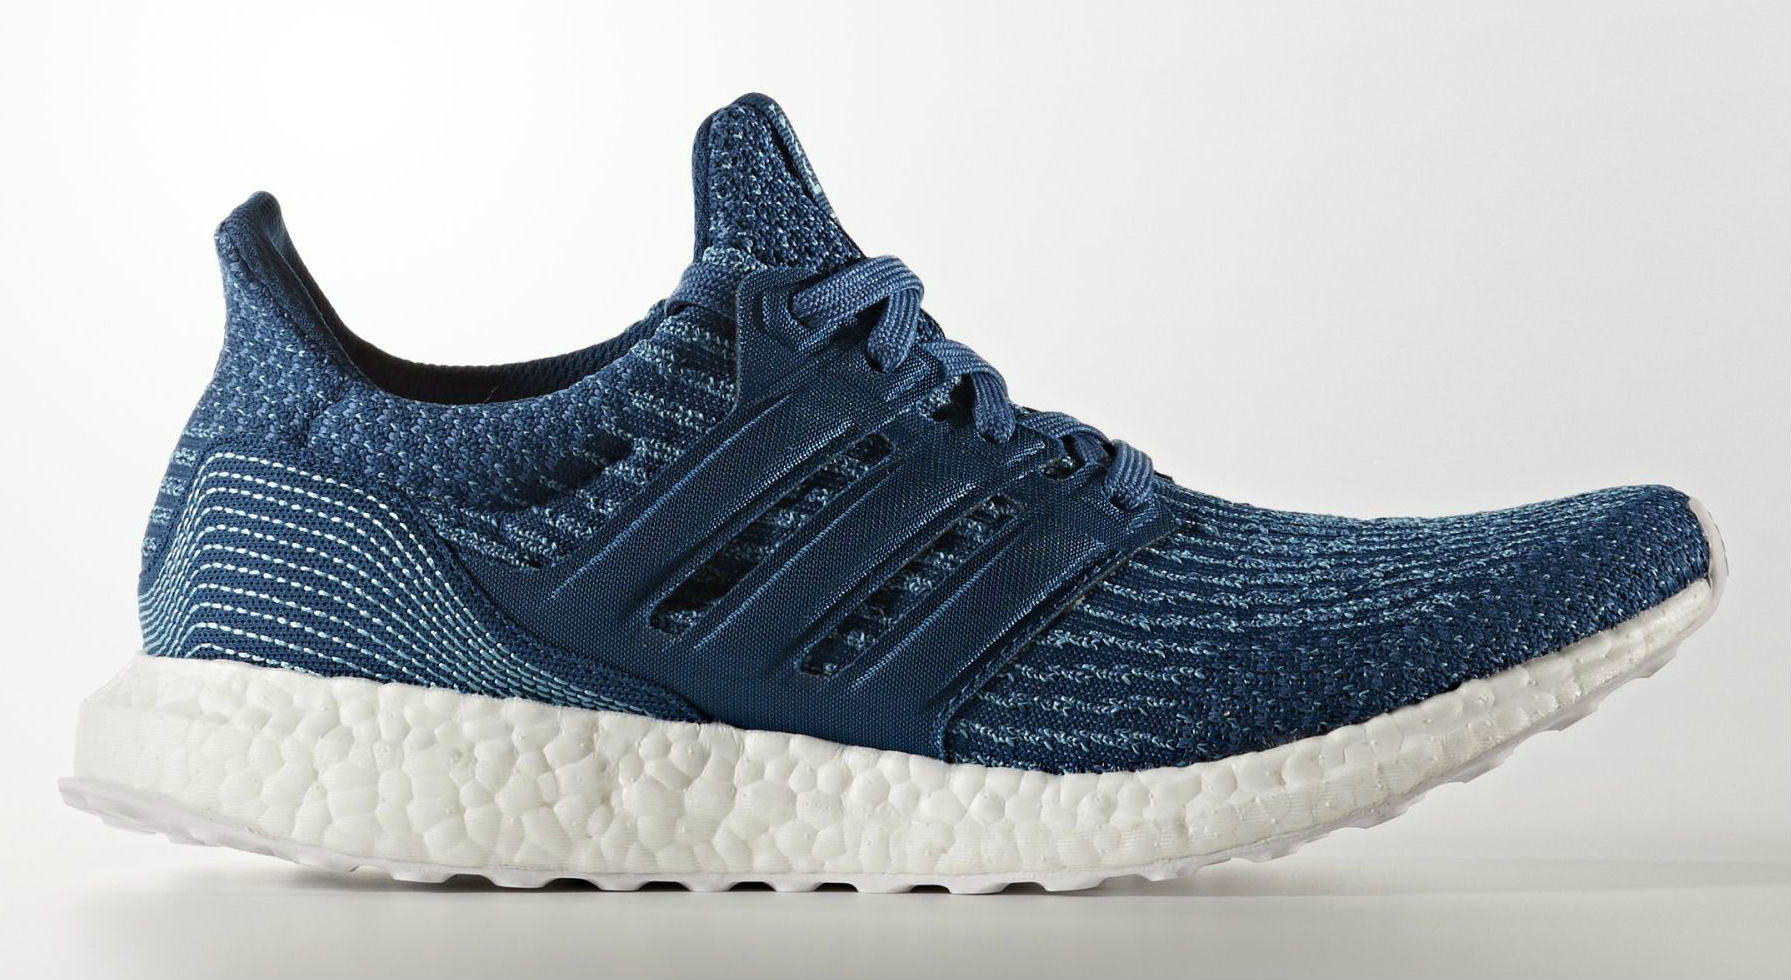 parley x adidas ultra boost blue men women bb4762 bb1978. Black Bedroom Furniture Sets. Home Design Ideas